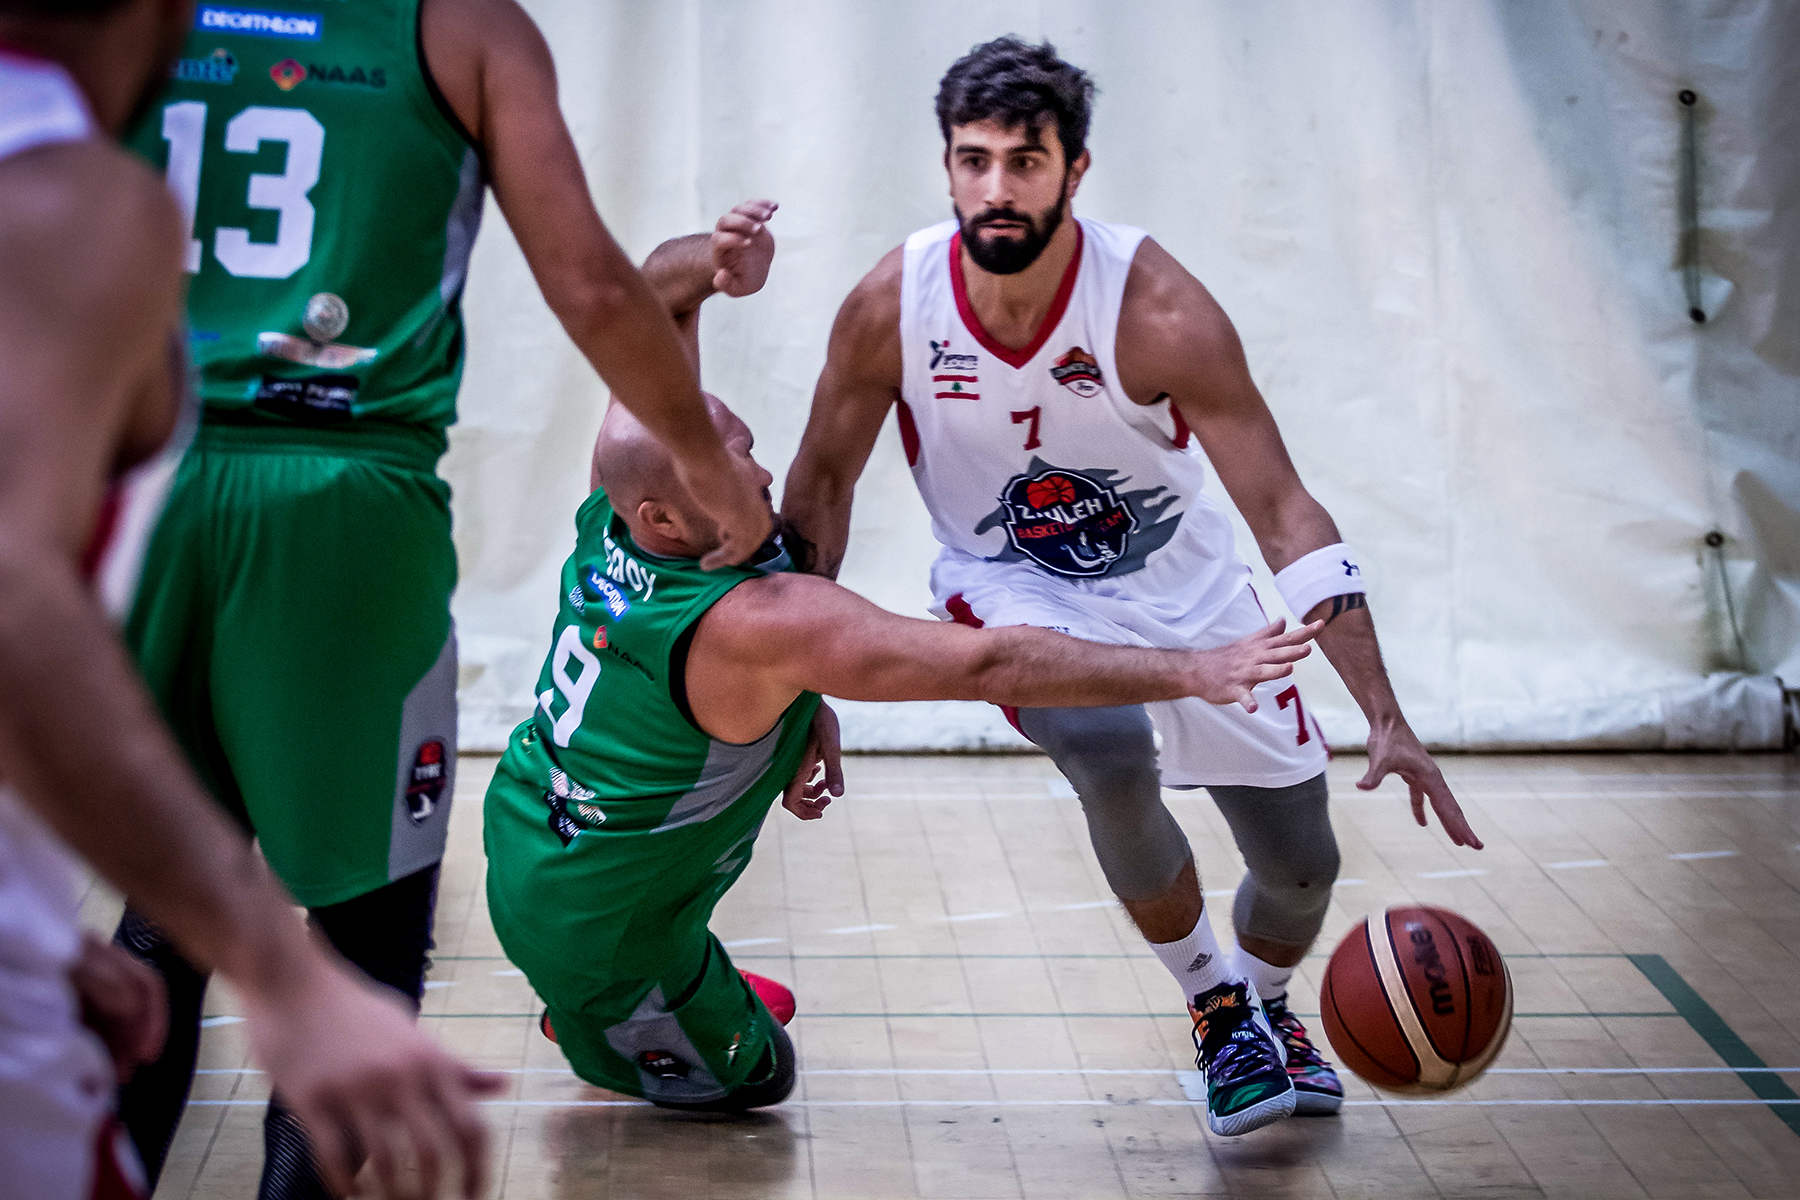 https://sport360.com/article/other/345799/byblos-tripoli-and-zahle-victorious-in-week-two-of-the-lebanese-expats-basketball-championship